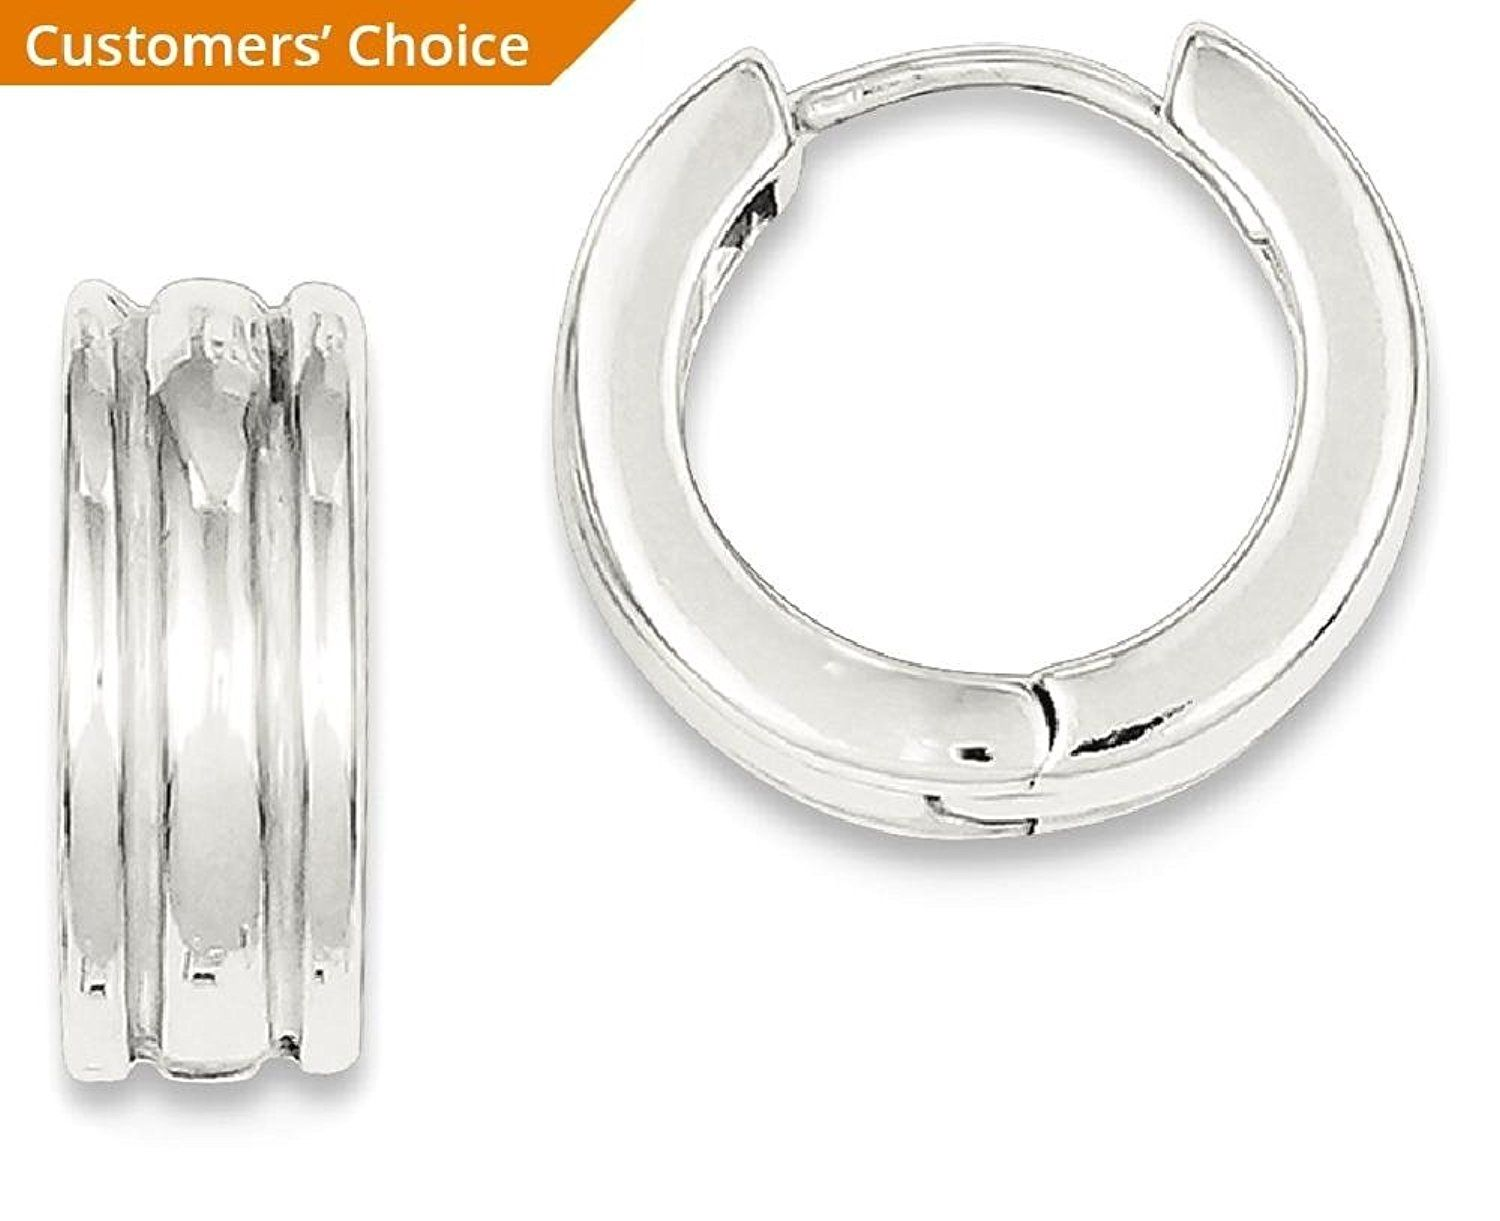 053008ad3 ICE CARATS 925 Sterling Silver Ridged Hoop Earrings Ear Hoops Set Fine  Jewelry Gift For Women